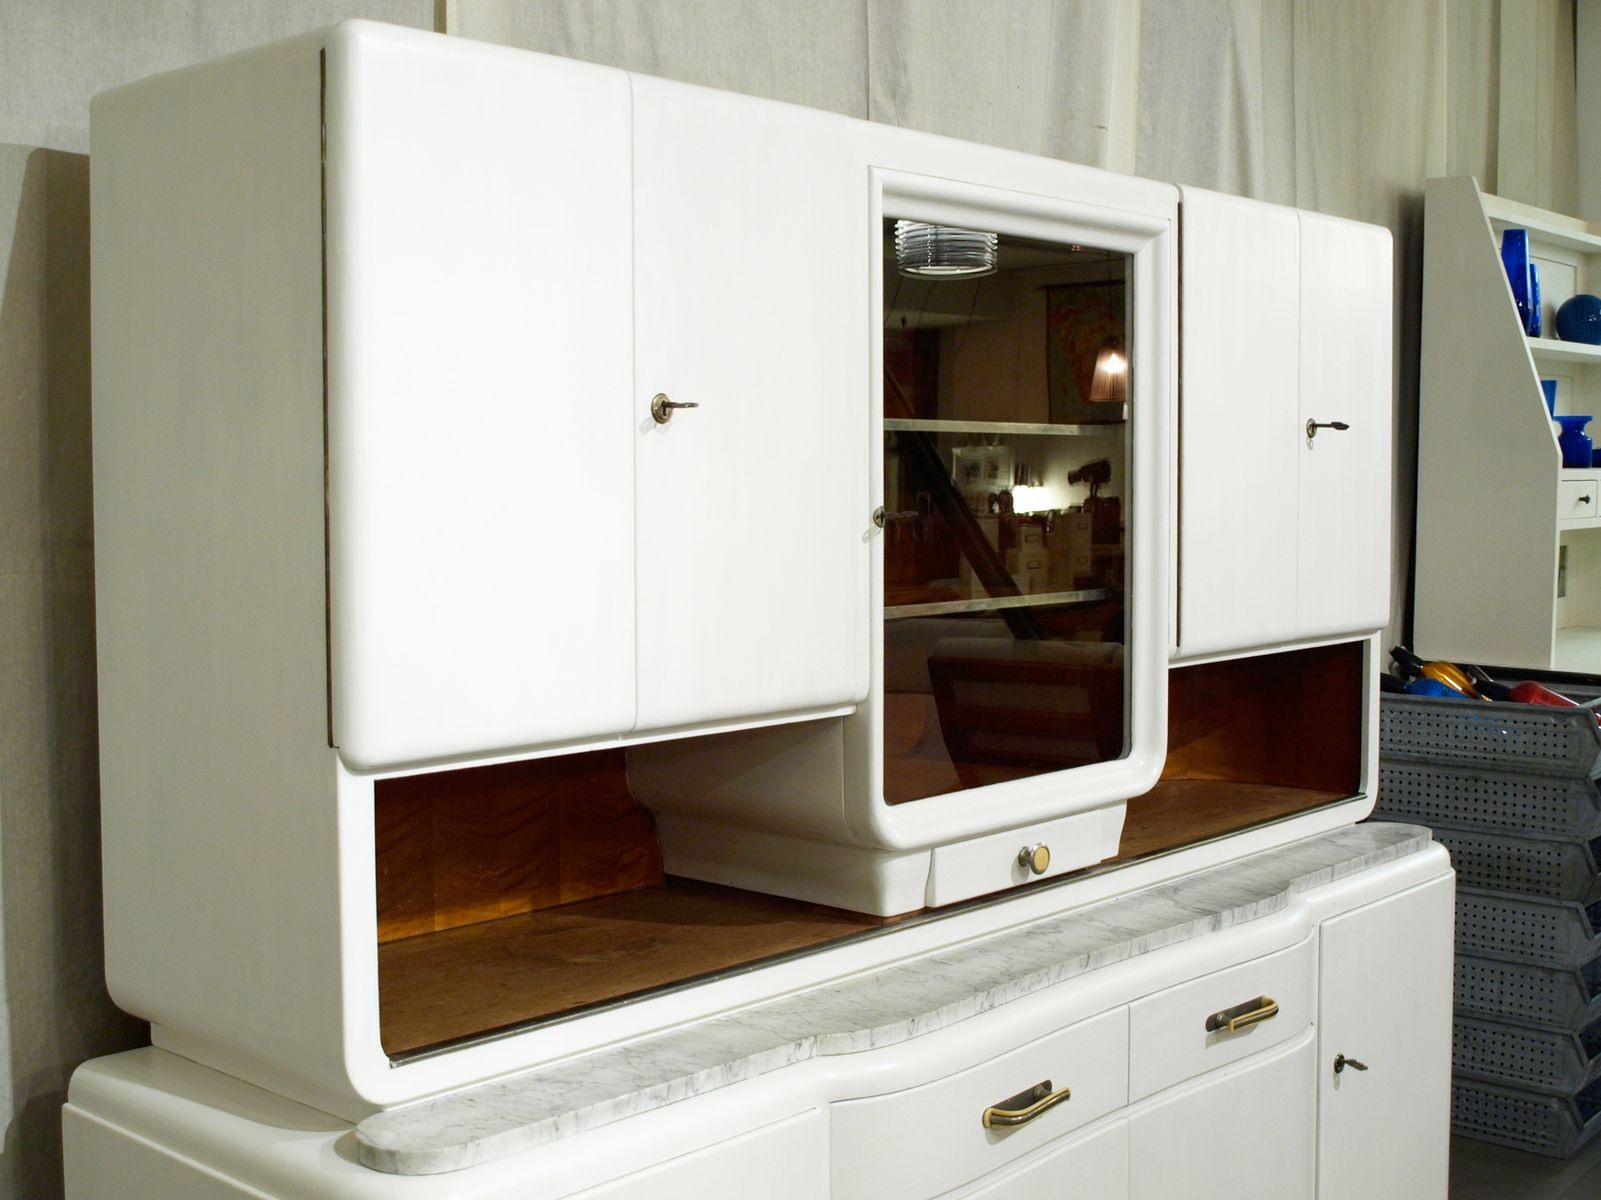 Vintage kitchen cabinet by niestrath 1930s for sale at pamono for 1930s kitchen cabinets for sale